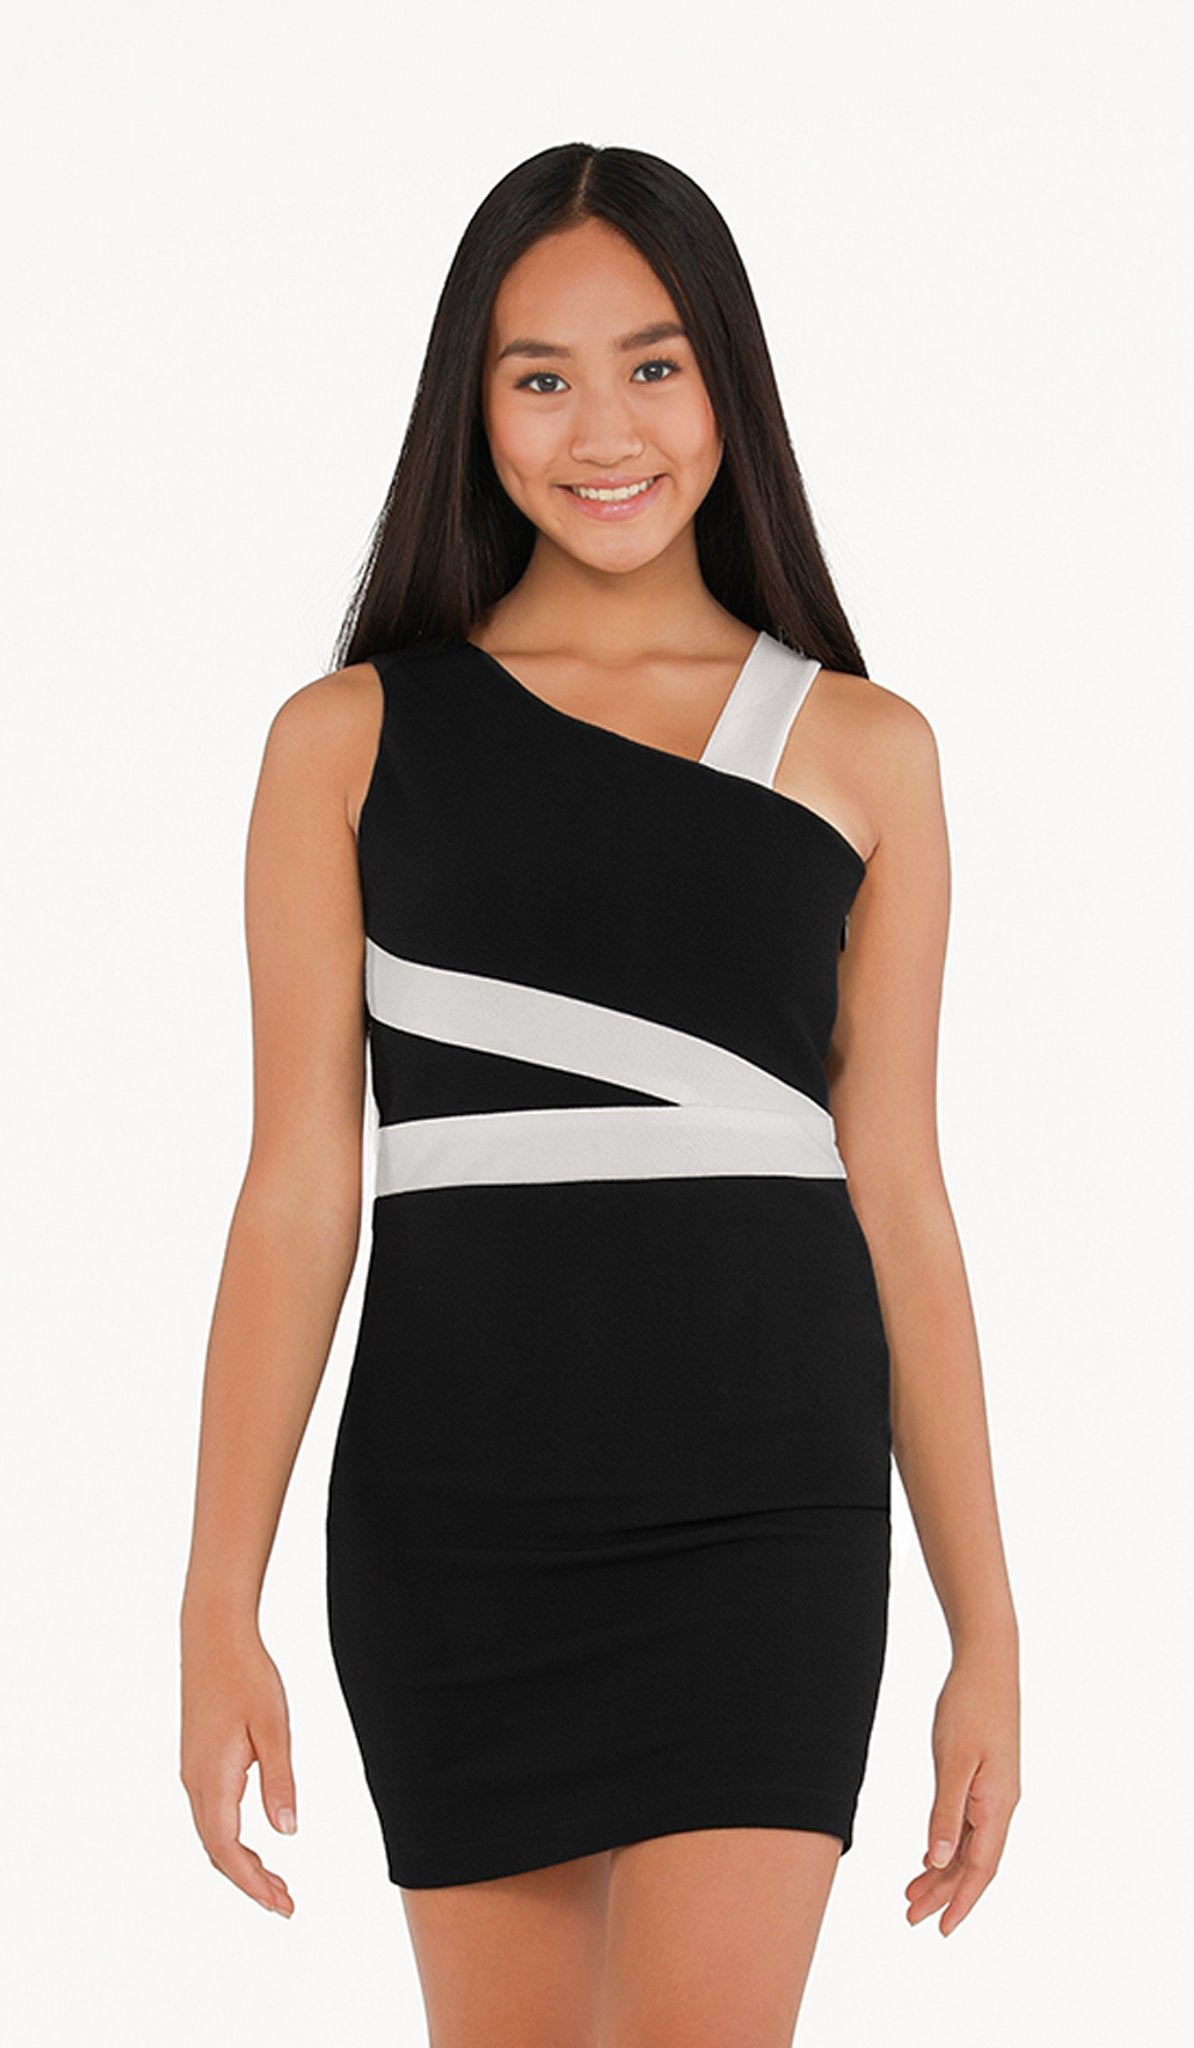 The Sally Miller Melissa Dress (Juniors) - Black stretch textured knit bodycon dress with ivory trim detail and side zipper  | Event & Party Dresses for Tween Girls & Juniors | Weddings Dresses, Bat Mitzvah Dresses, Sweet Sixteen Dresses, Graduation Dresses, Birthday Party Dresses, Bar Mitzvah Dresses, Cotillion Dresses